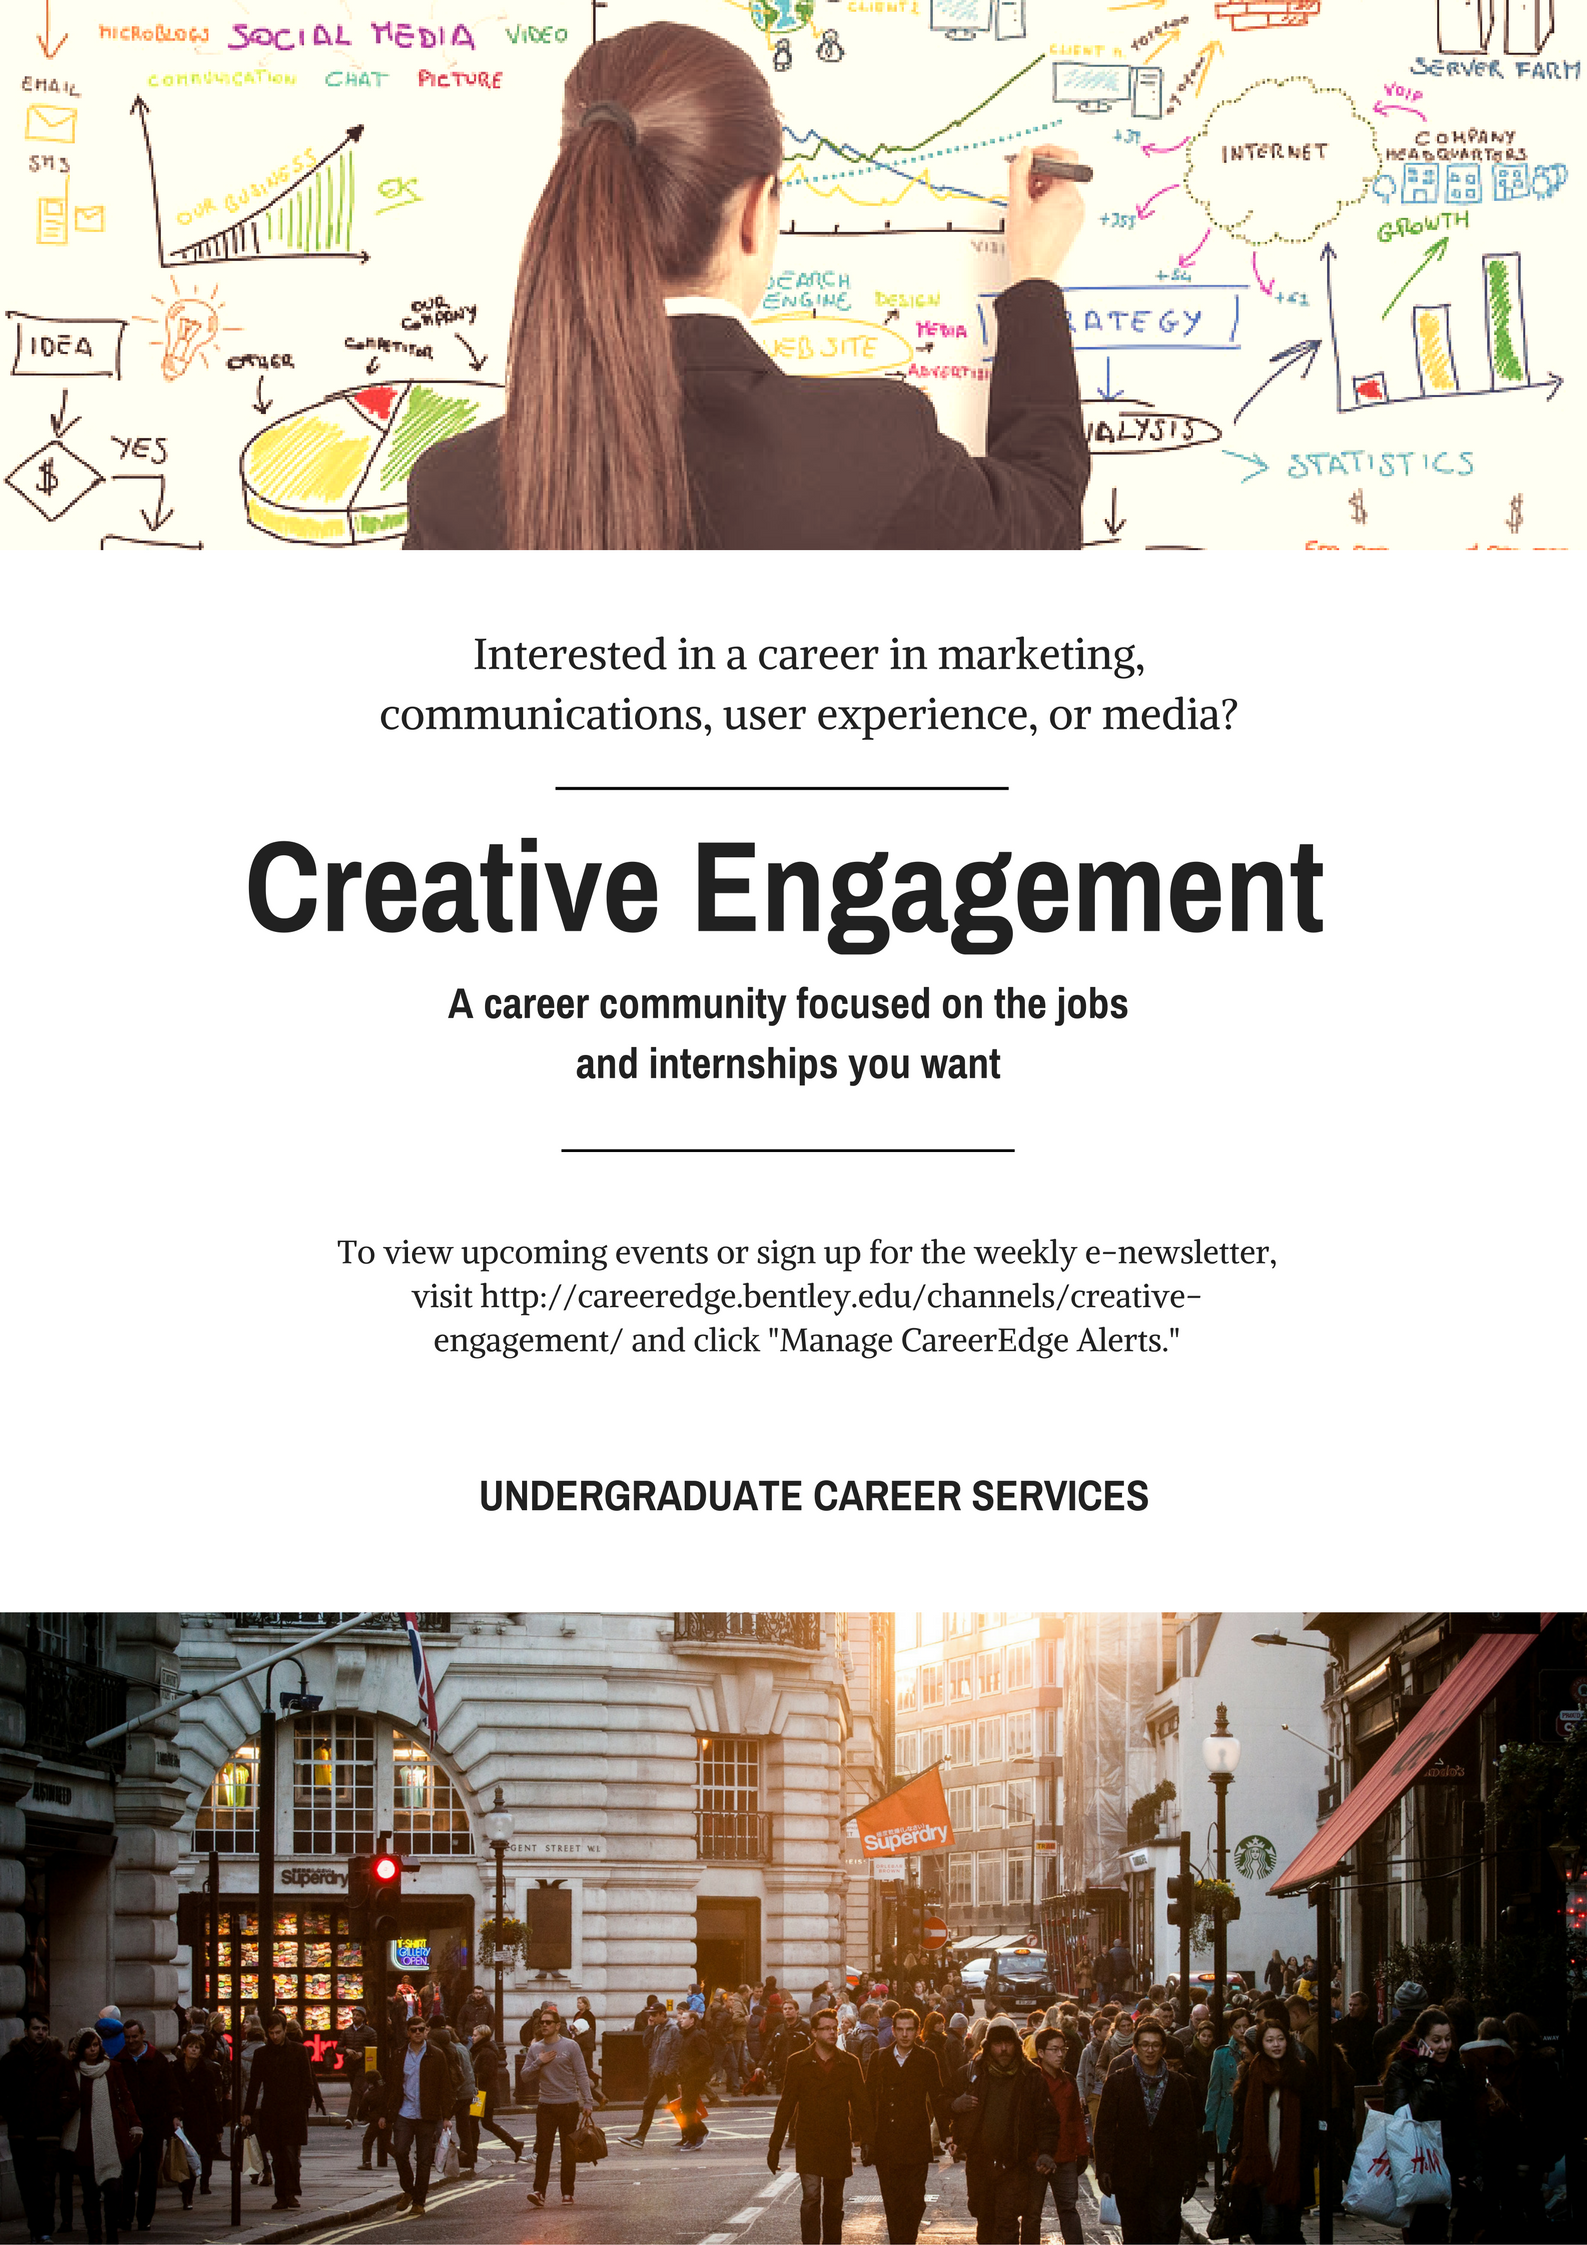 Creative Engagement Poster 2016-05-26